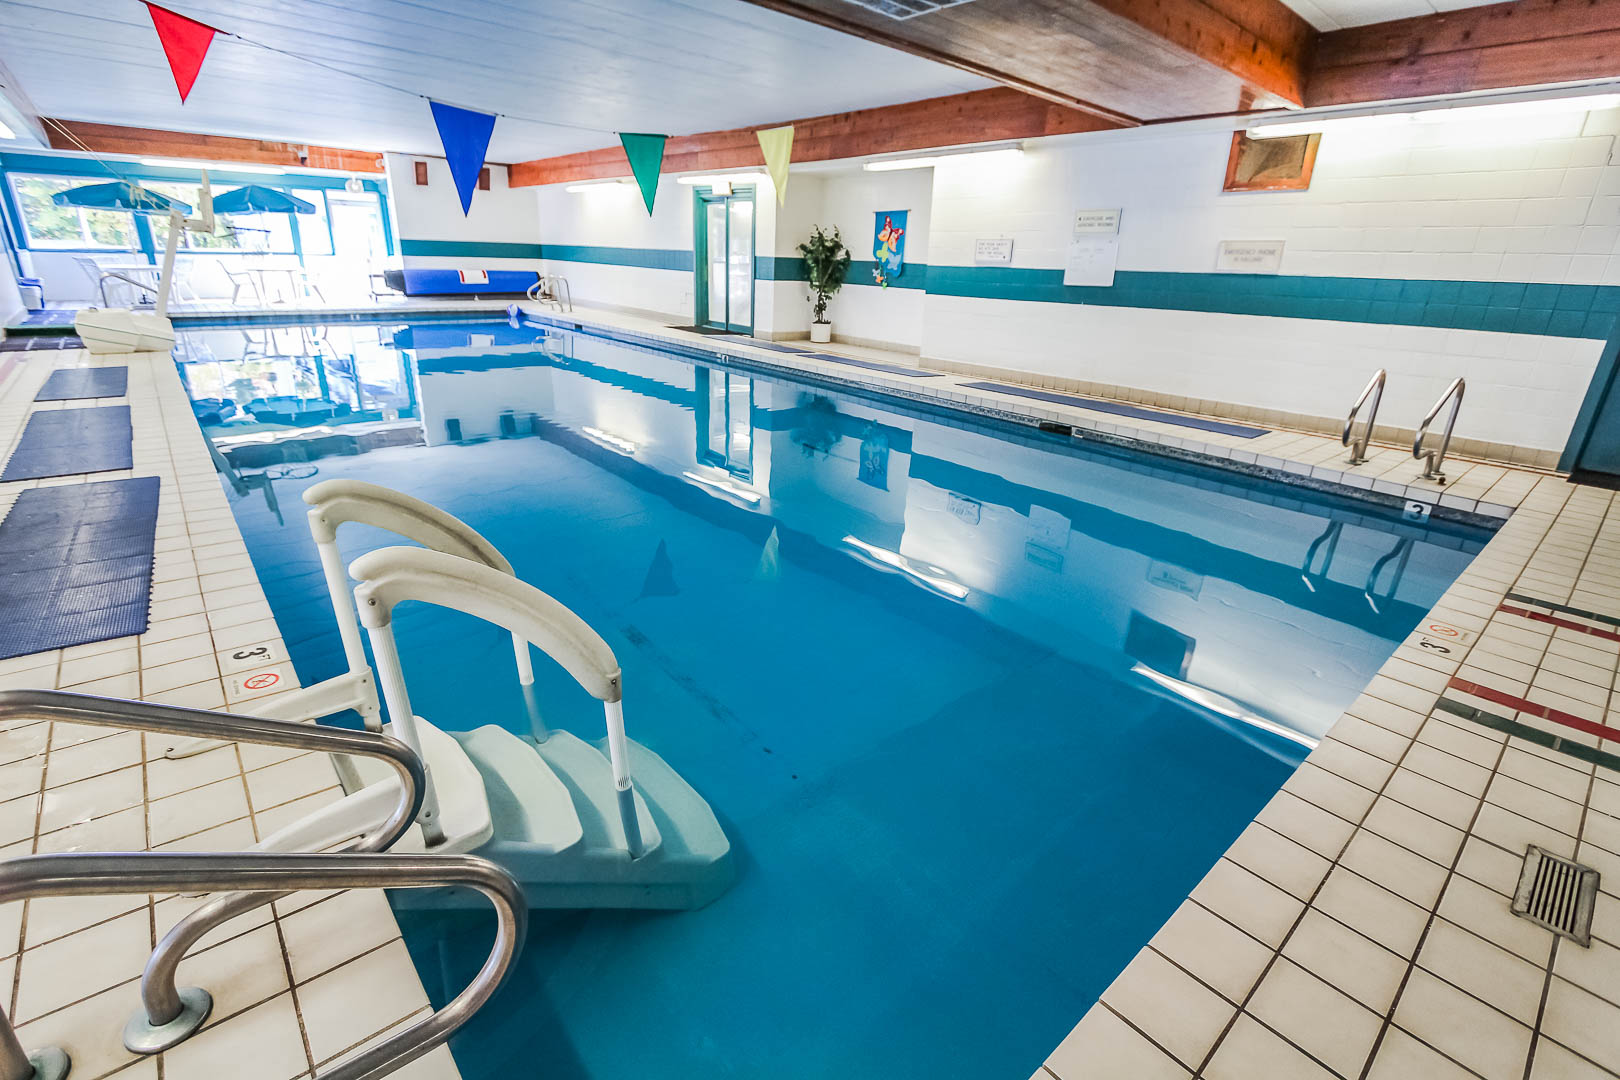 A spacious indoor swimming pool at VRI's Village of Loon Mountain in New Hampshire.